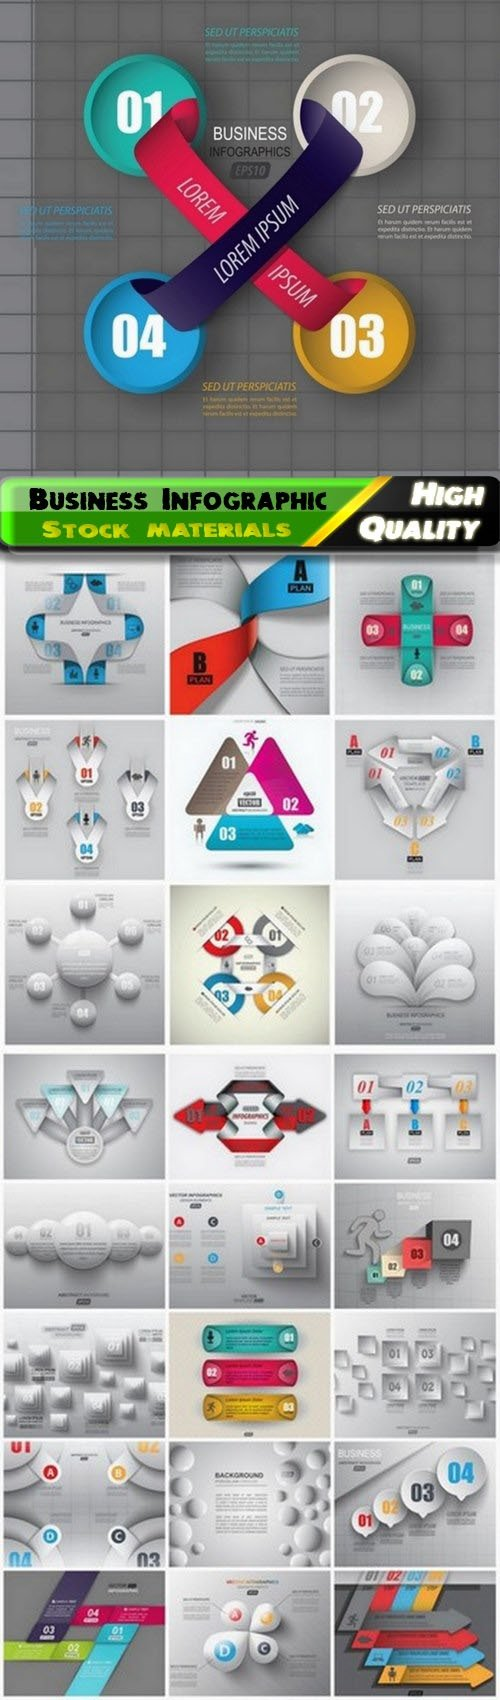 Business Infographic elements with shape for text 25 Eps